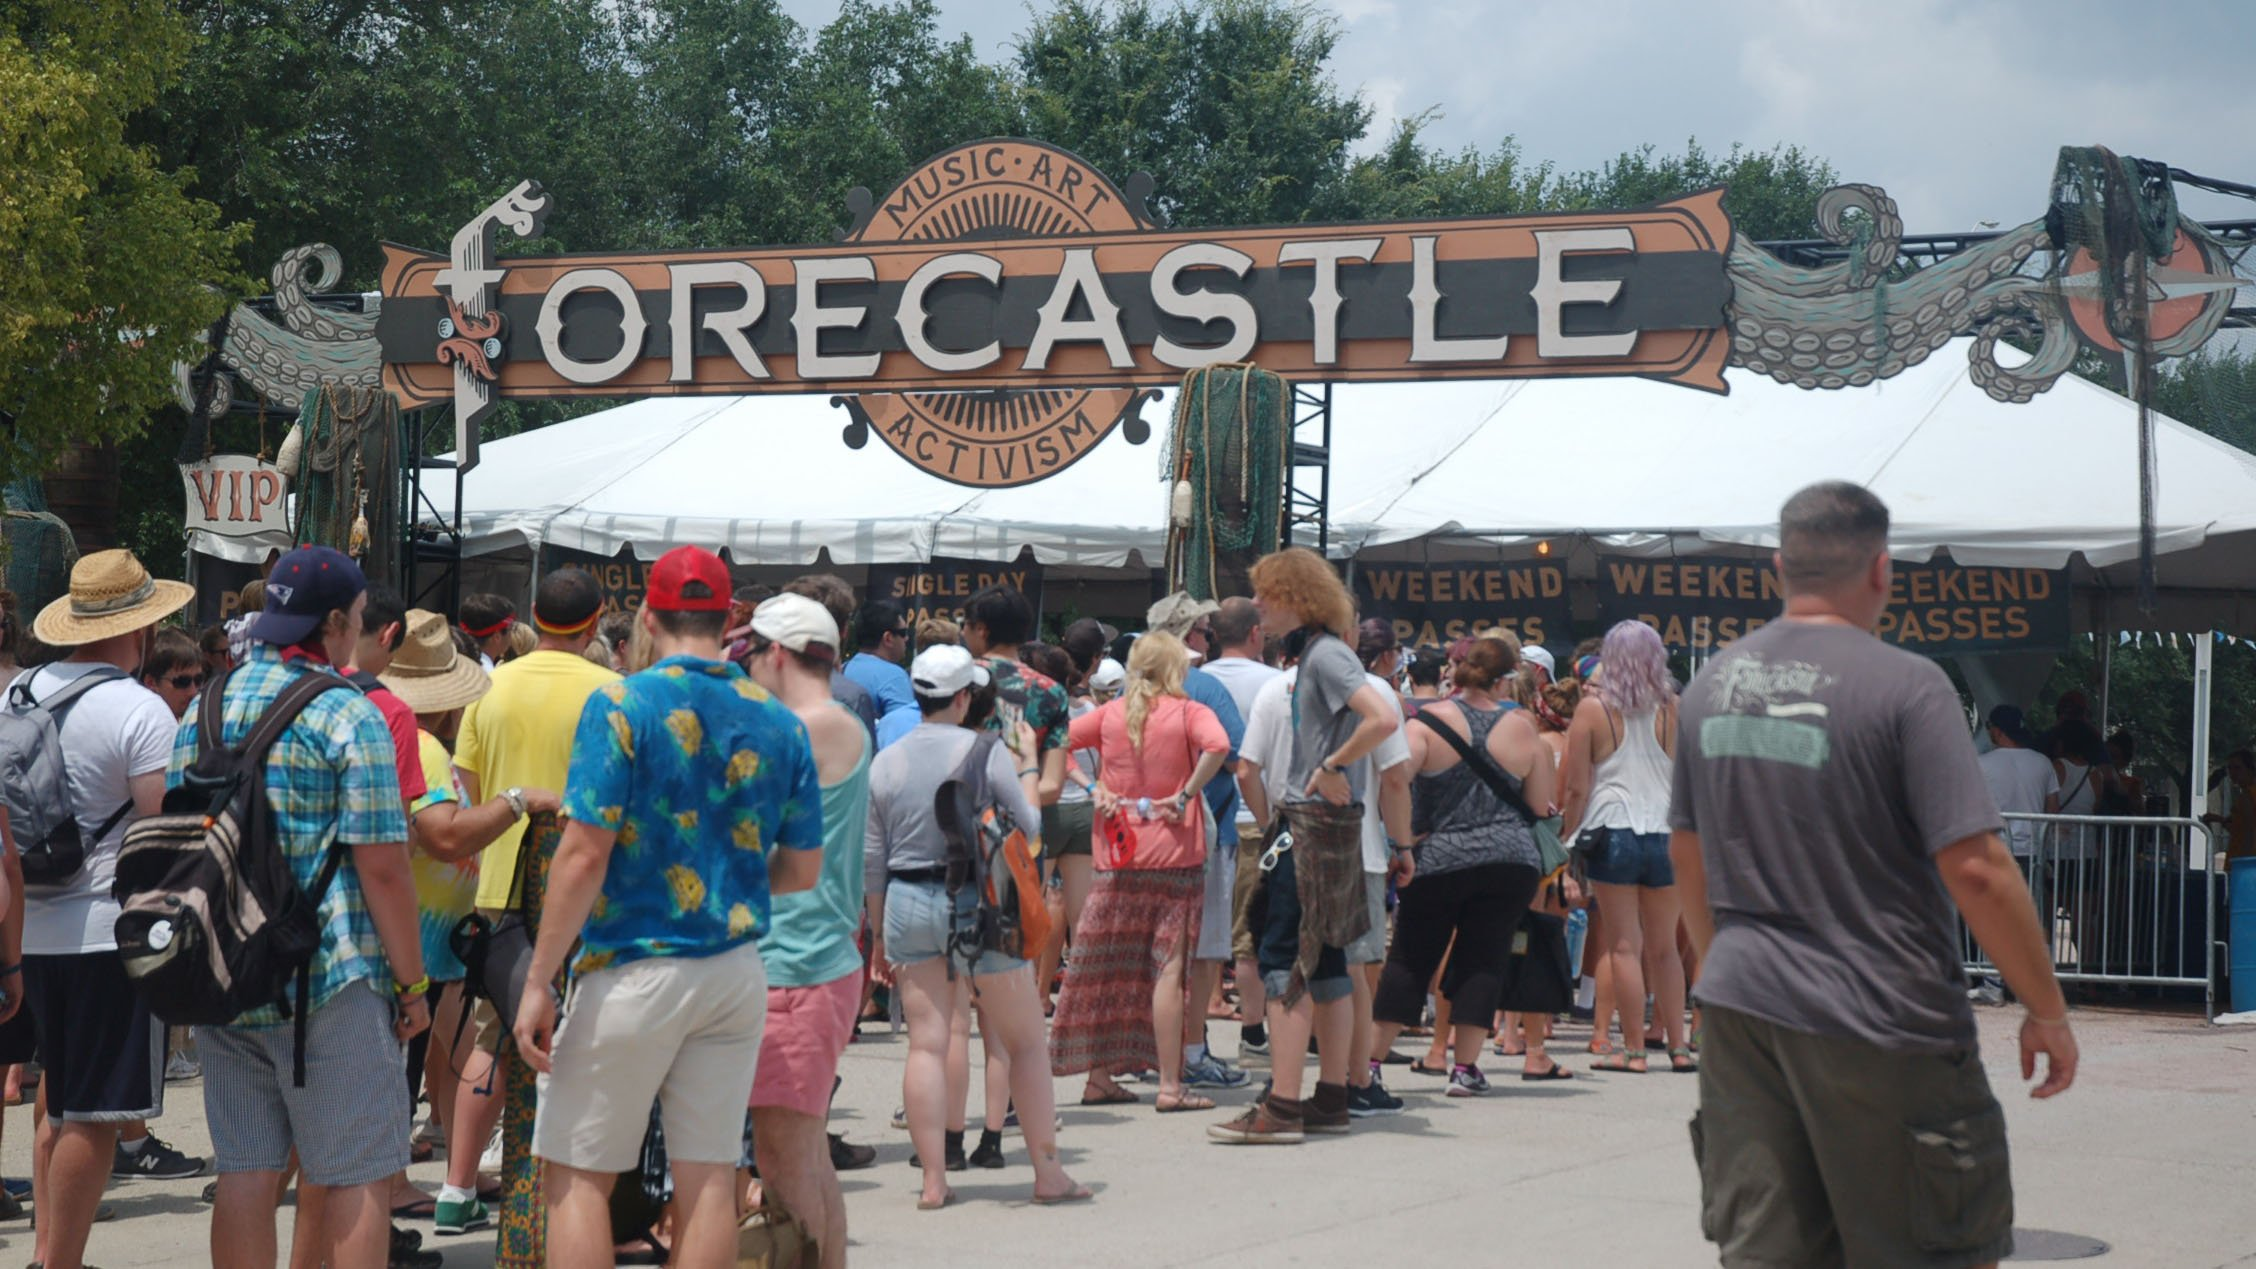 Lines await the delayed opening of the Forecastle gates on day 2 of the festival July 19, 2015.